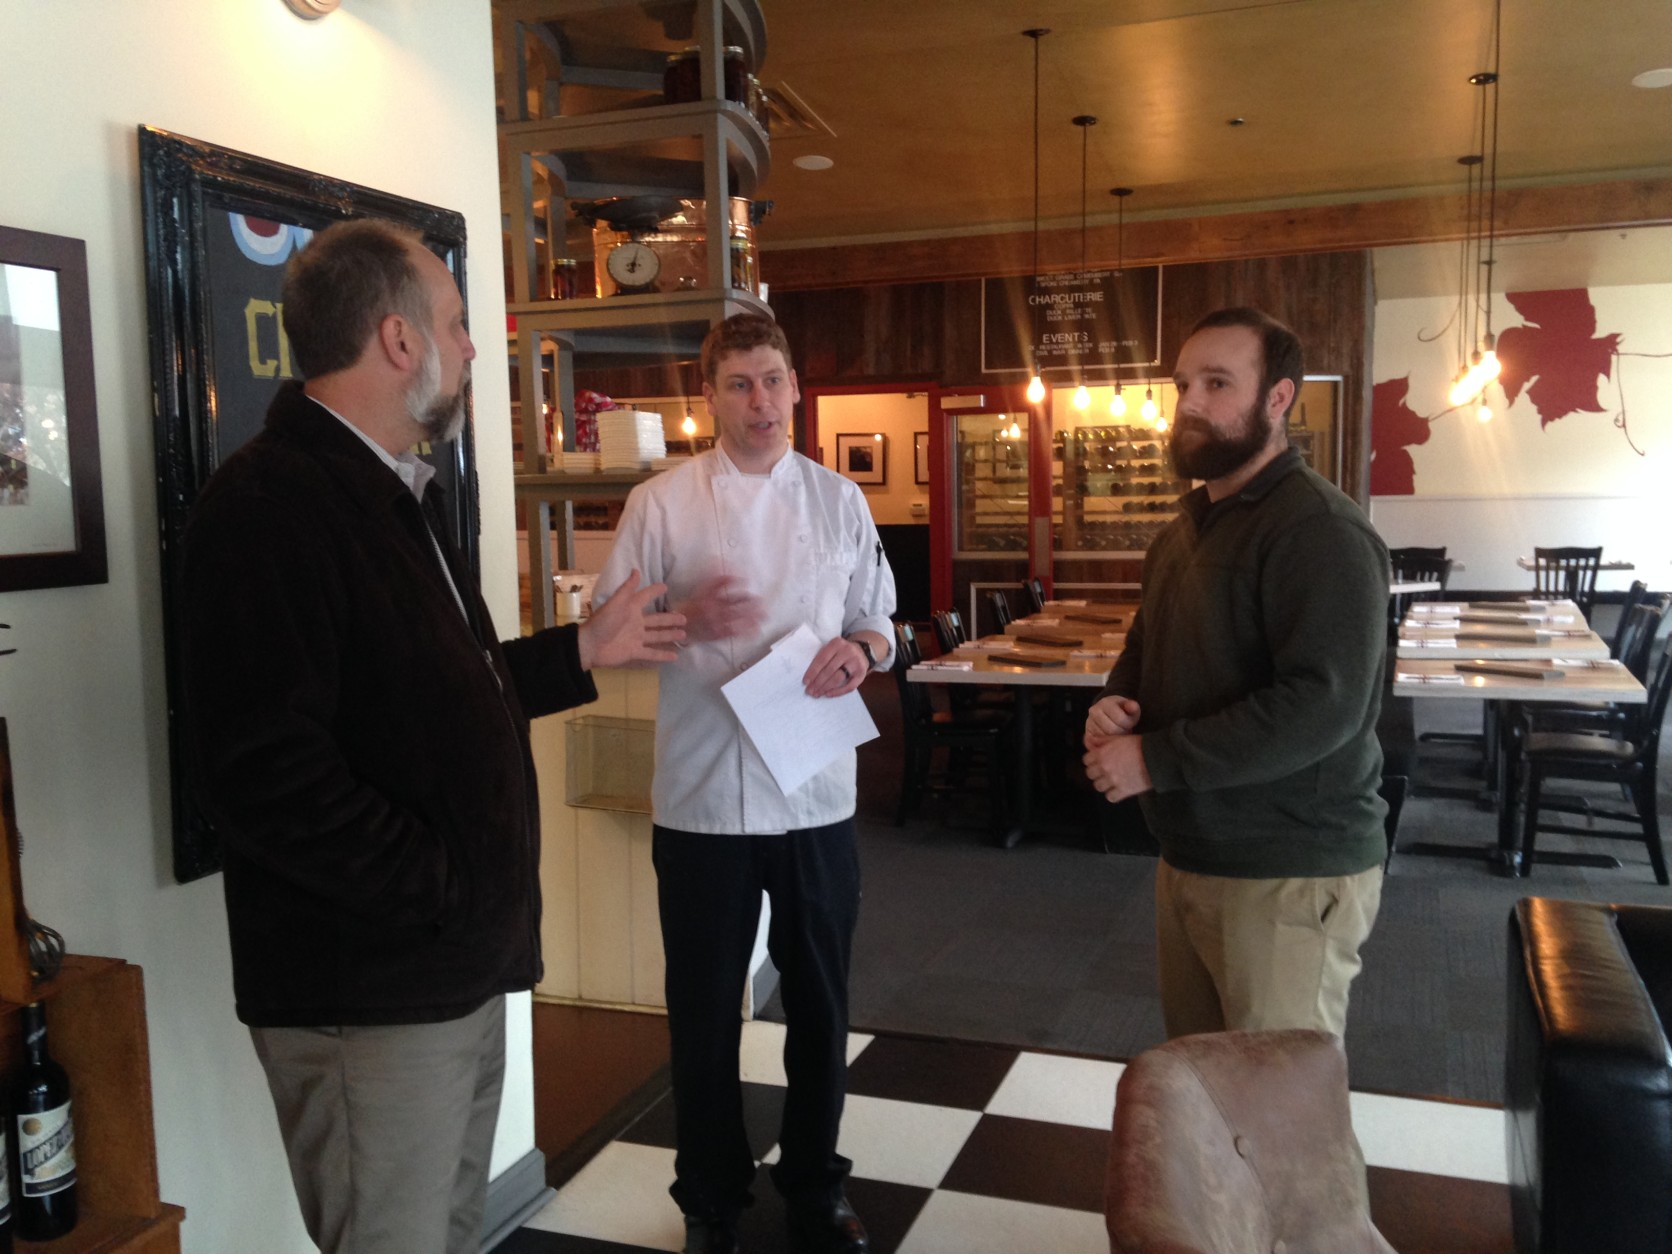 For Civil War menu, local chef inspired by unlikely muse: hospital ...